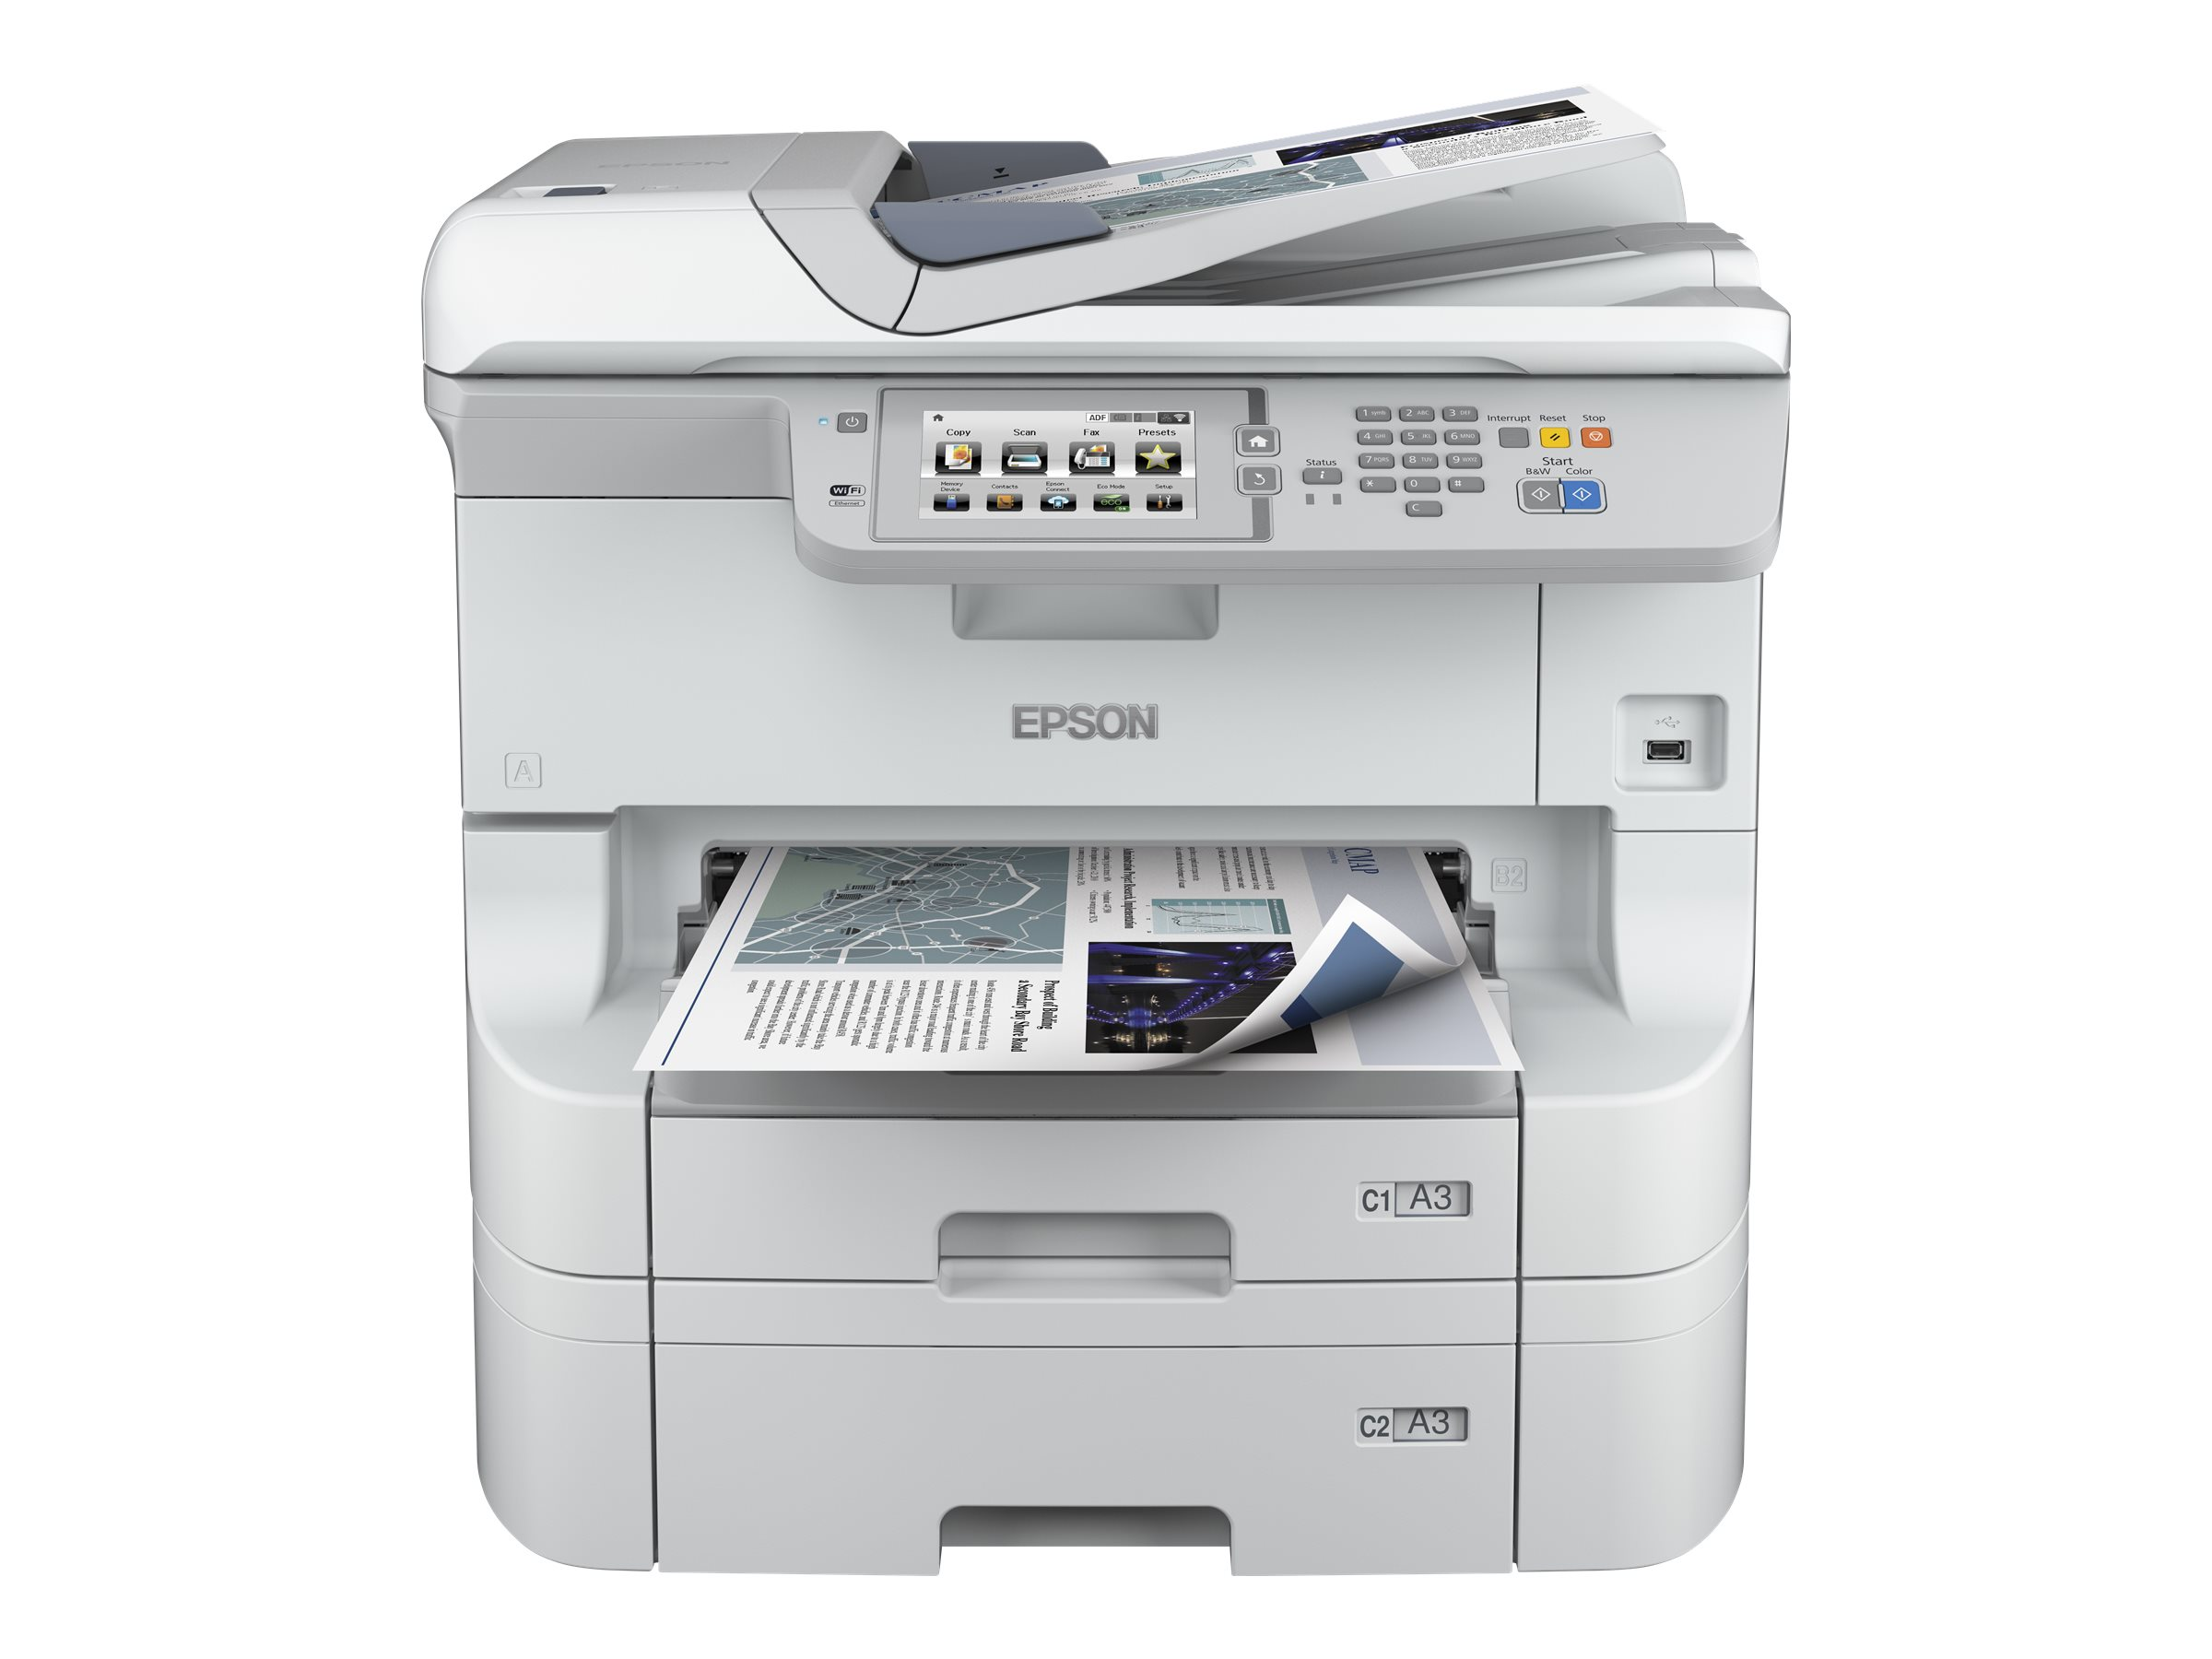 Epson WorkForce Pro WF-8590 DTWFC - Multifunktionsdrucker - Farbe - Tintenstrahl - A3 (297 x 420 mm)